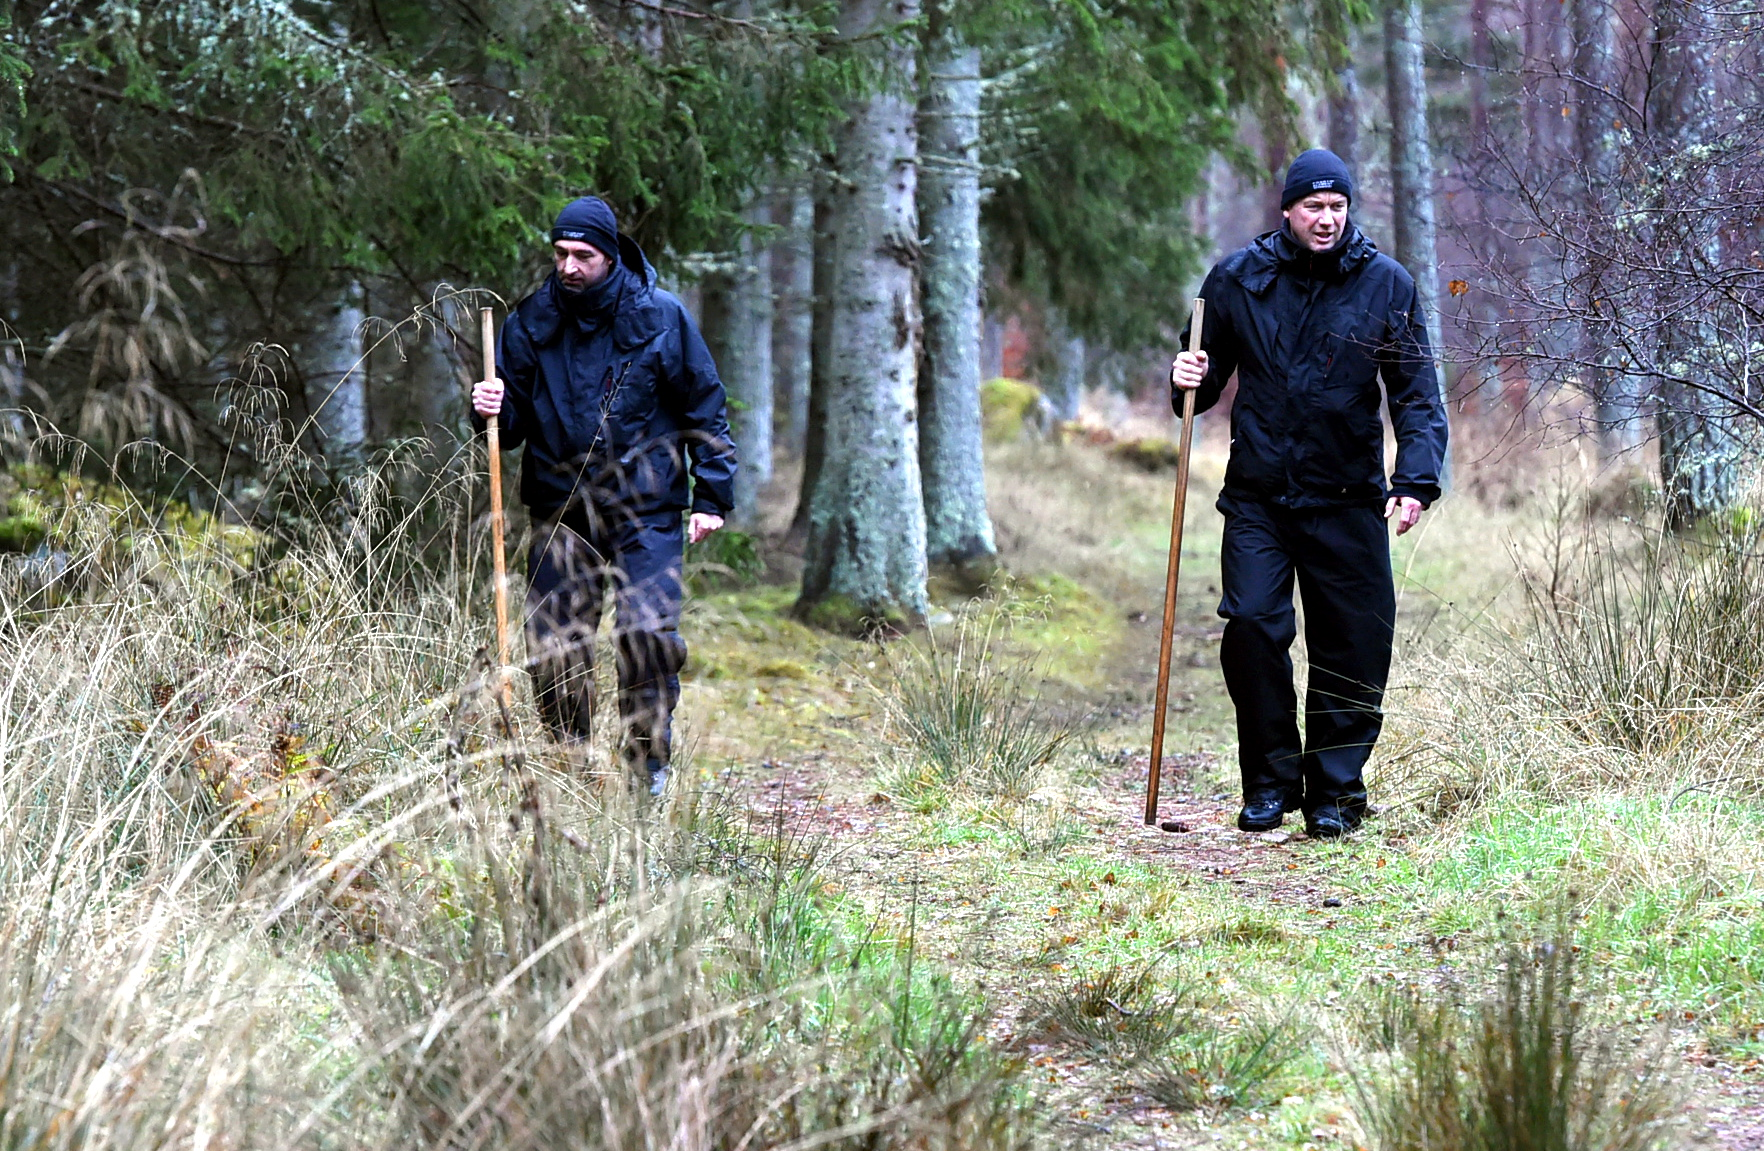 Search efforts for missing Liam Smith near Falls of Dess, Aberdeenshire